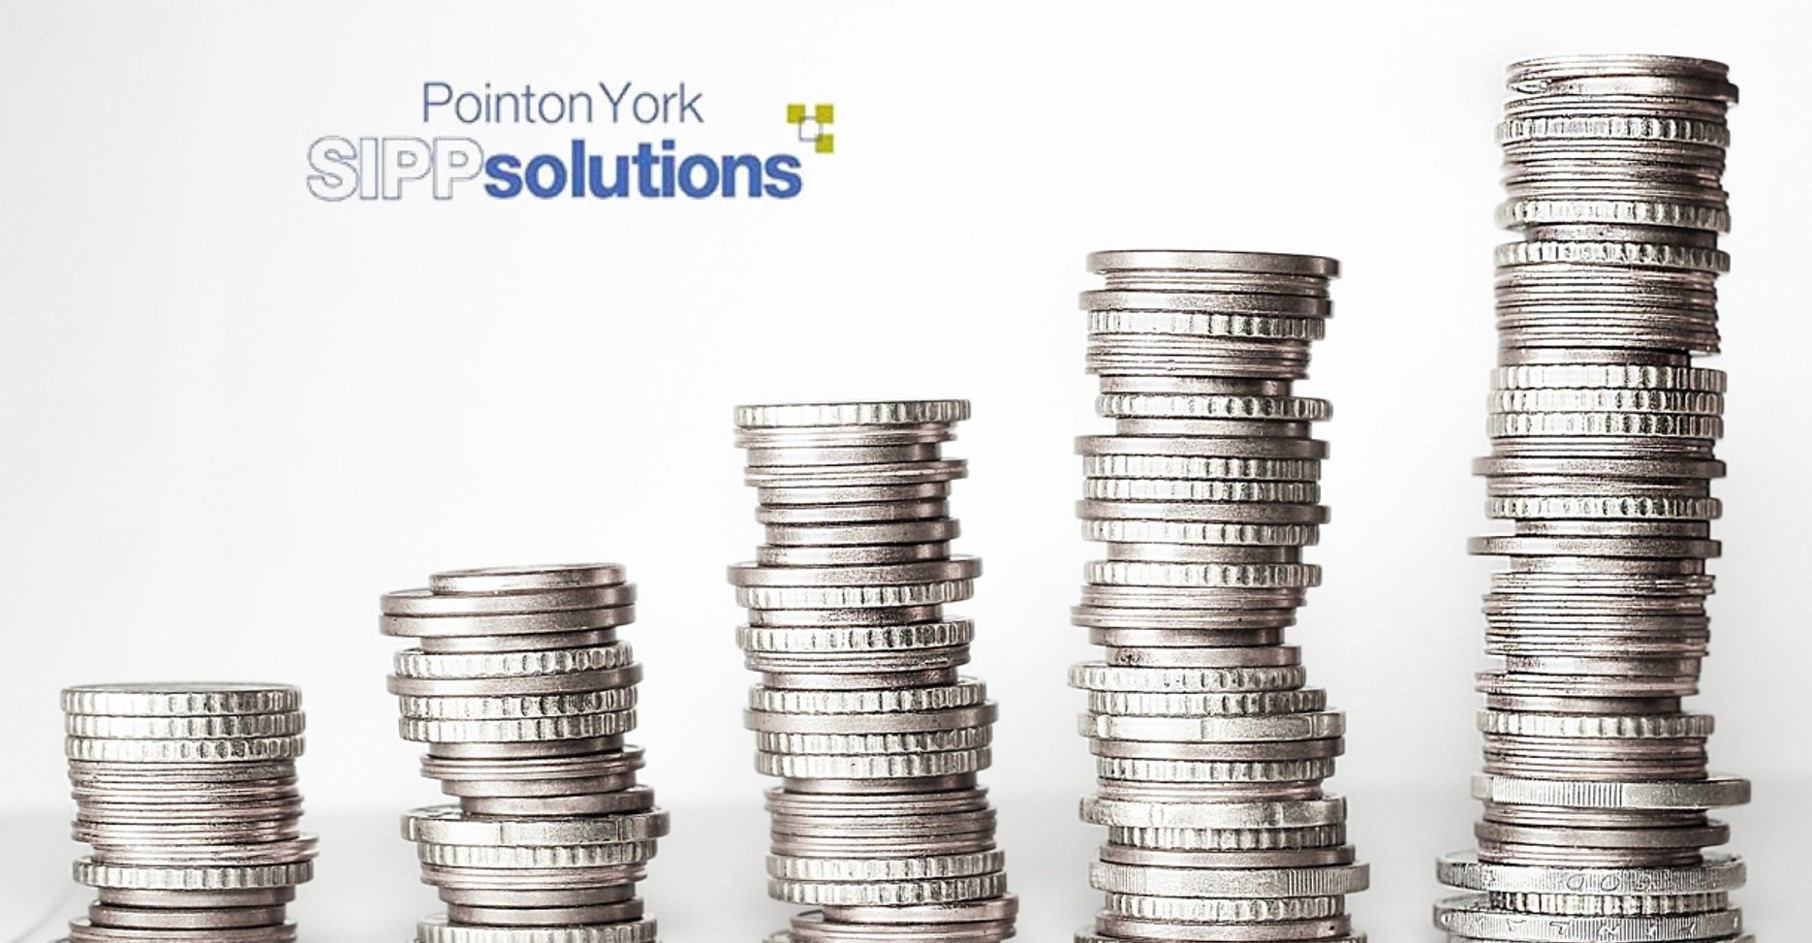 Pointon York receives 50 FSCS claims